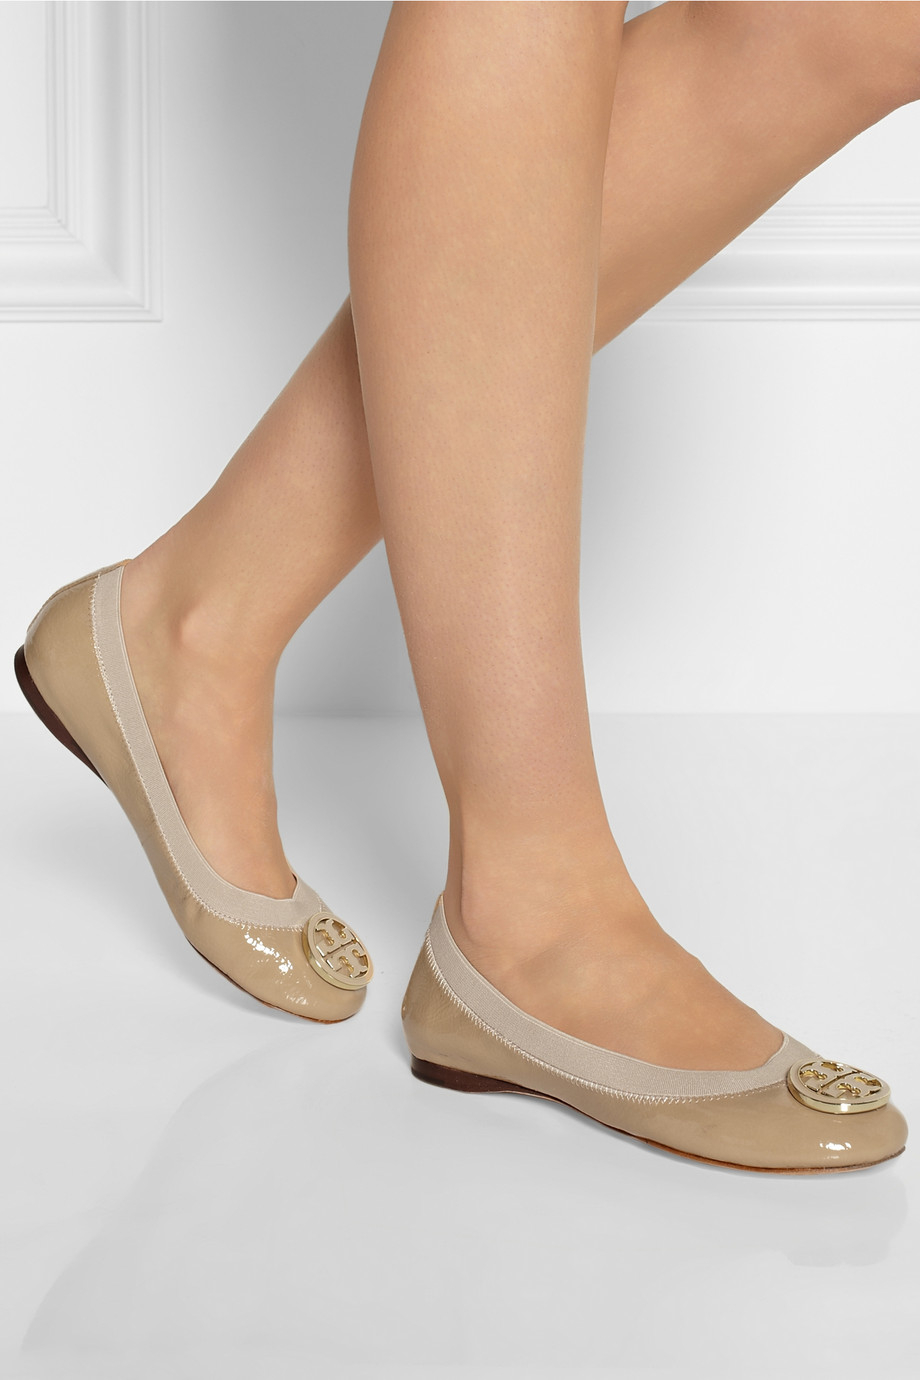 78ea5a06f7e61d Lyst - Tory Burch Caroline Patentleather Ballet Flats in Natural